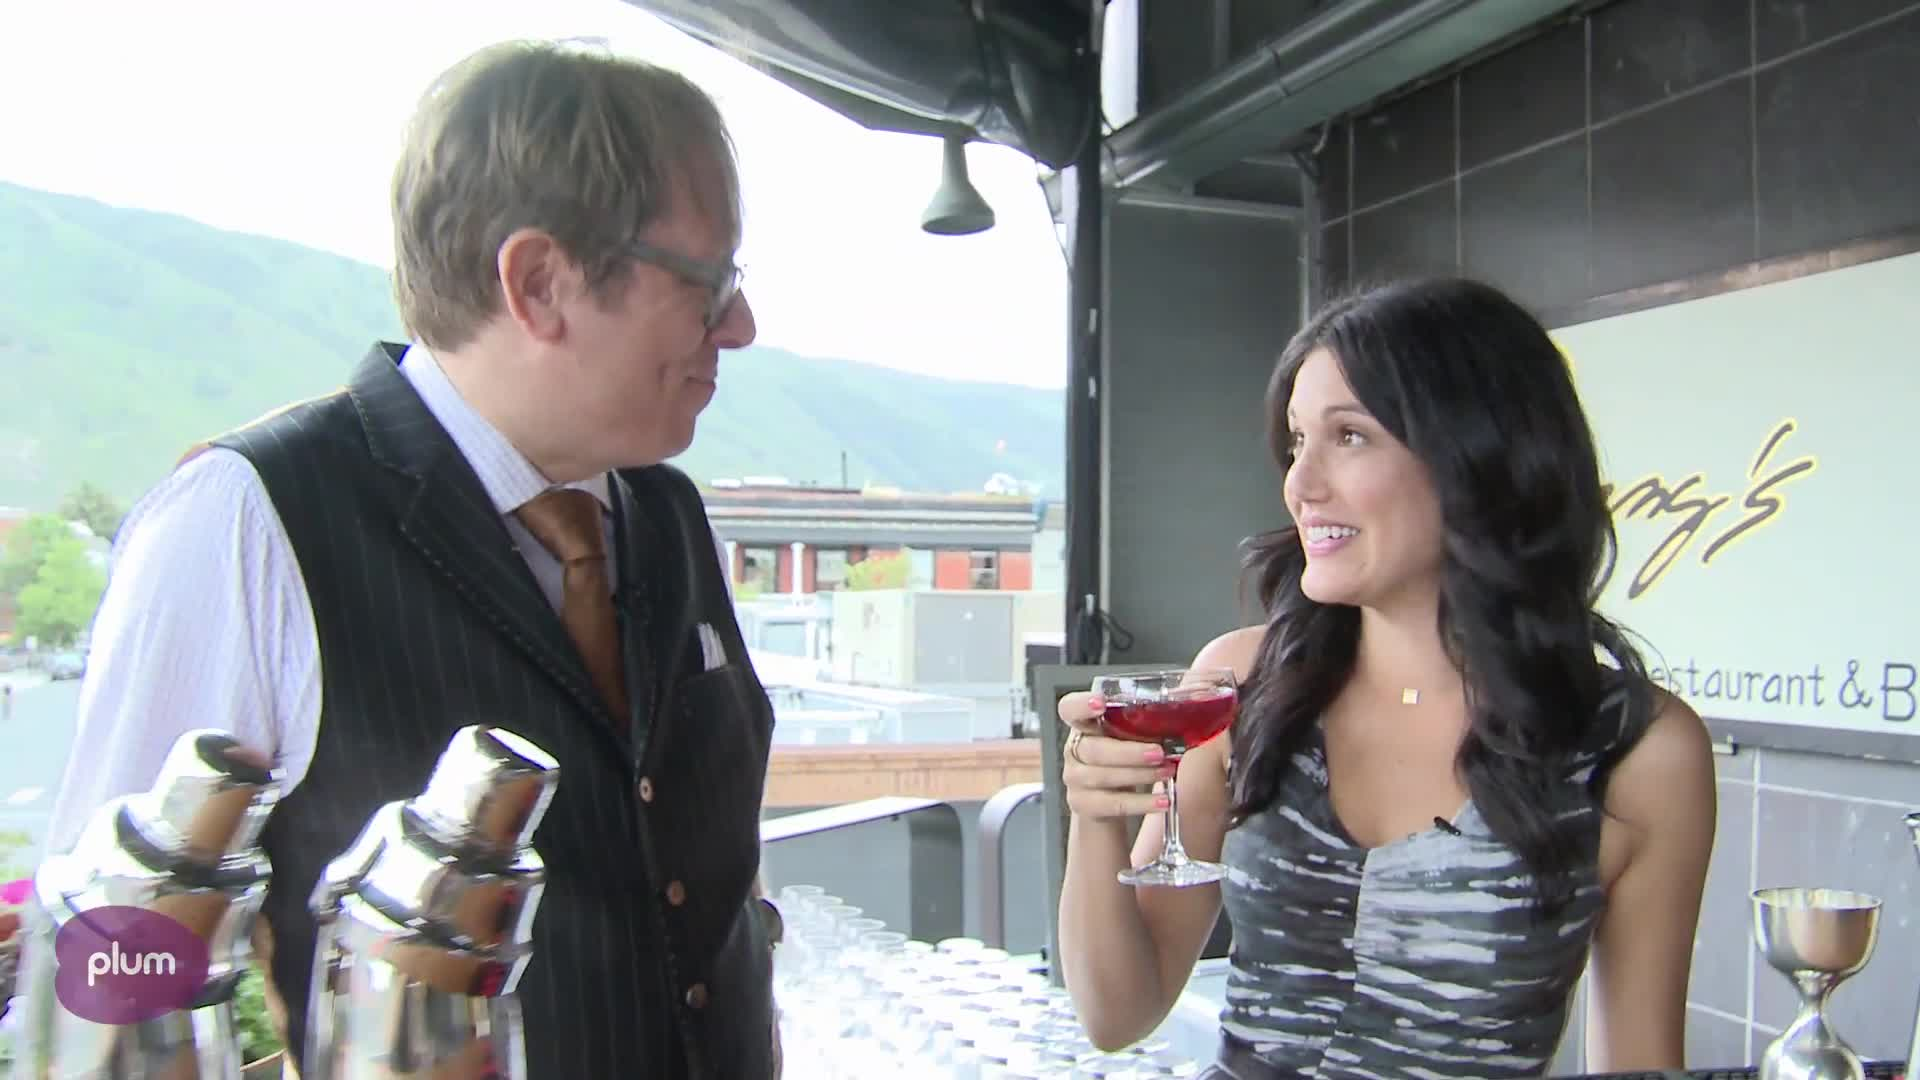 Making Pre-Prohibition Cocktails at the 2012 Food and Wine Classic in Aspen